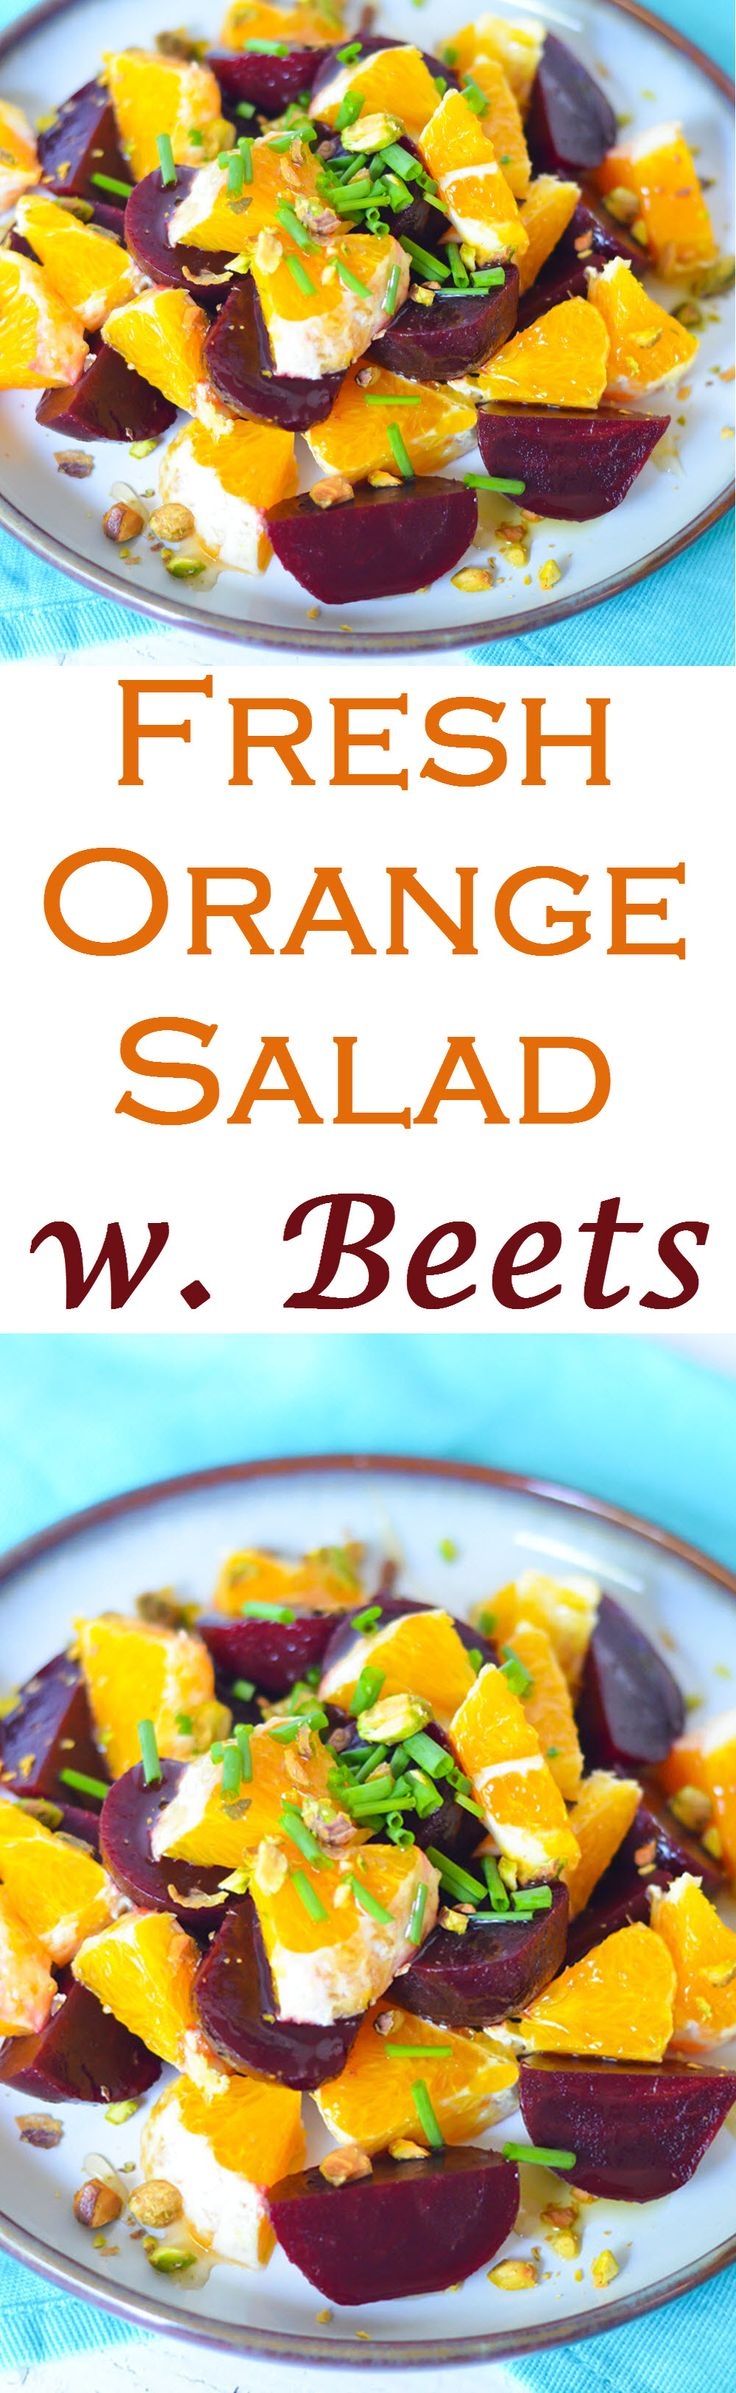 Fresh Orange Baby Salad w. Beets - a perfect way to enjoy citrus season and pack in the nutrients. Comes together in minutes for a healthy + quick salad/easy side dish